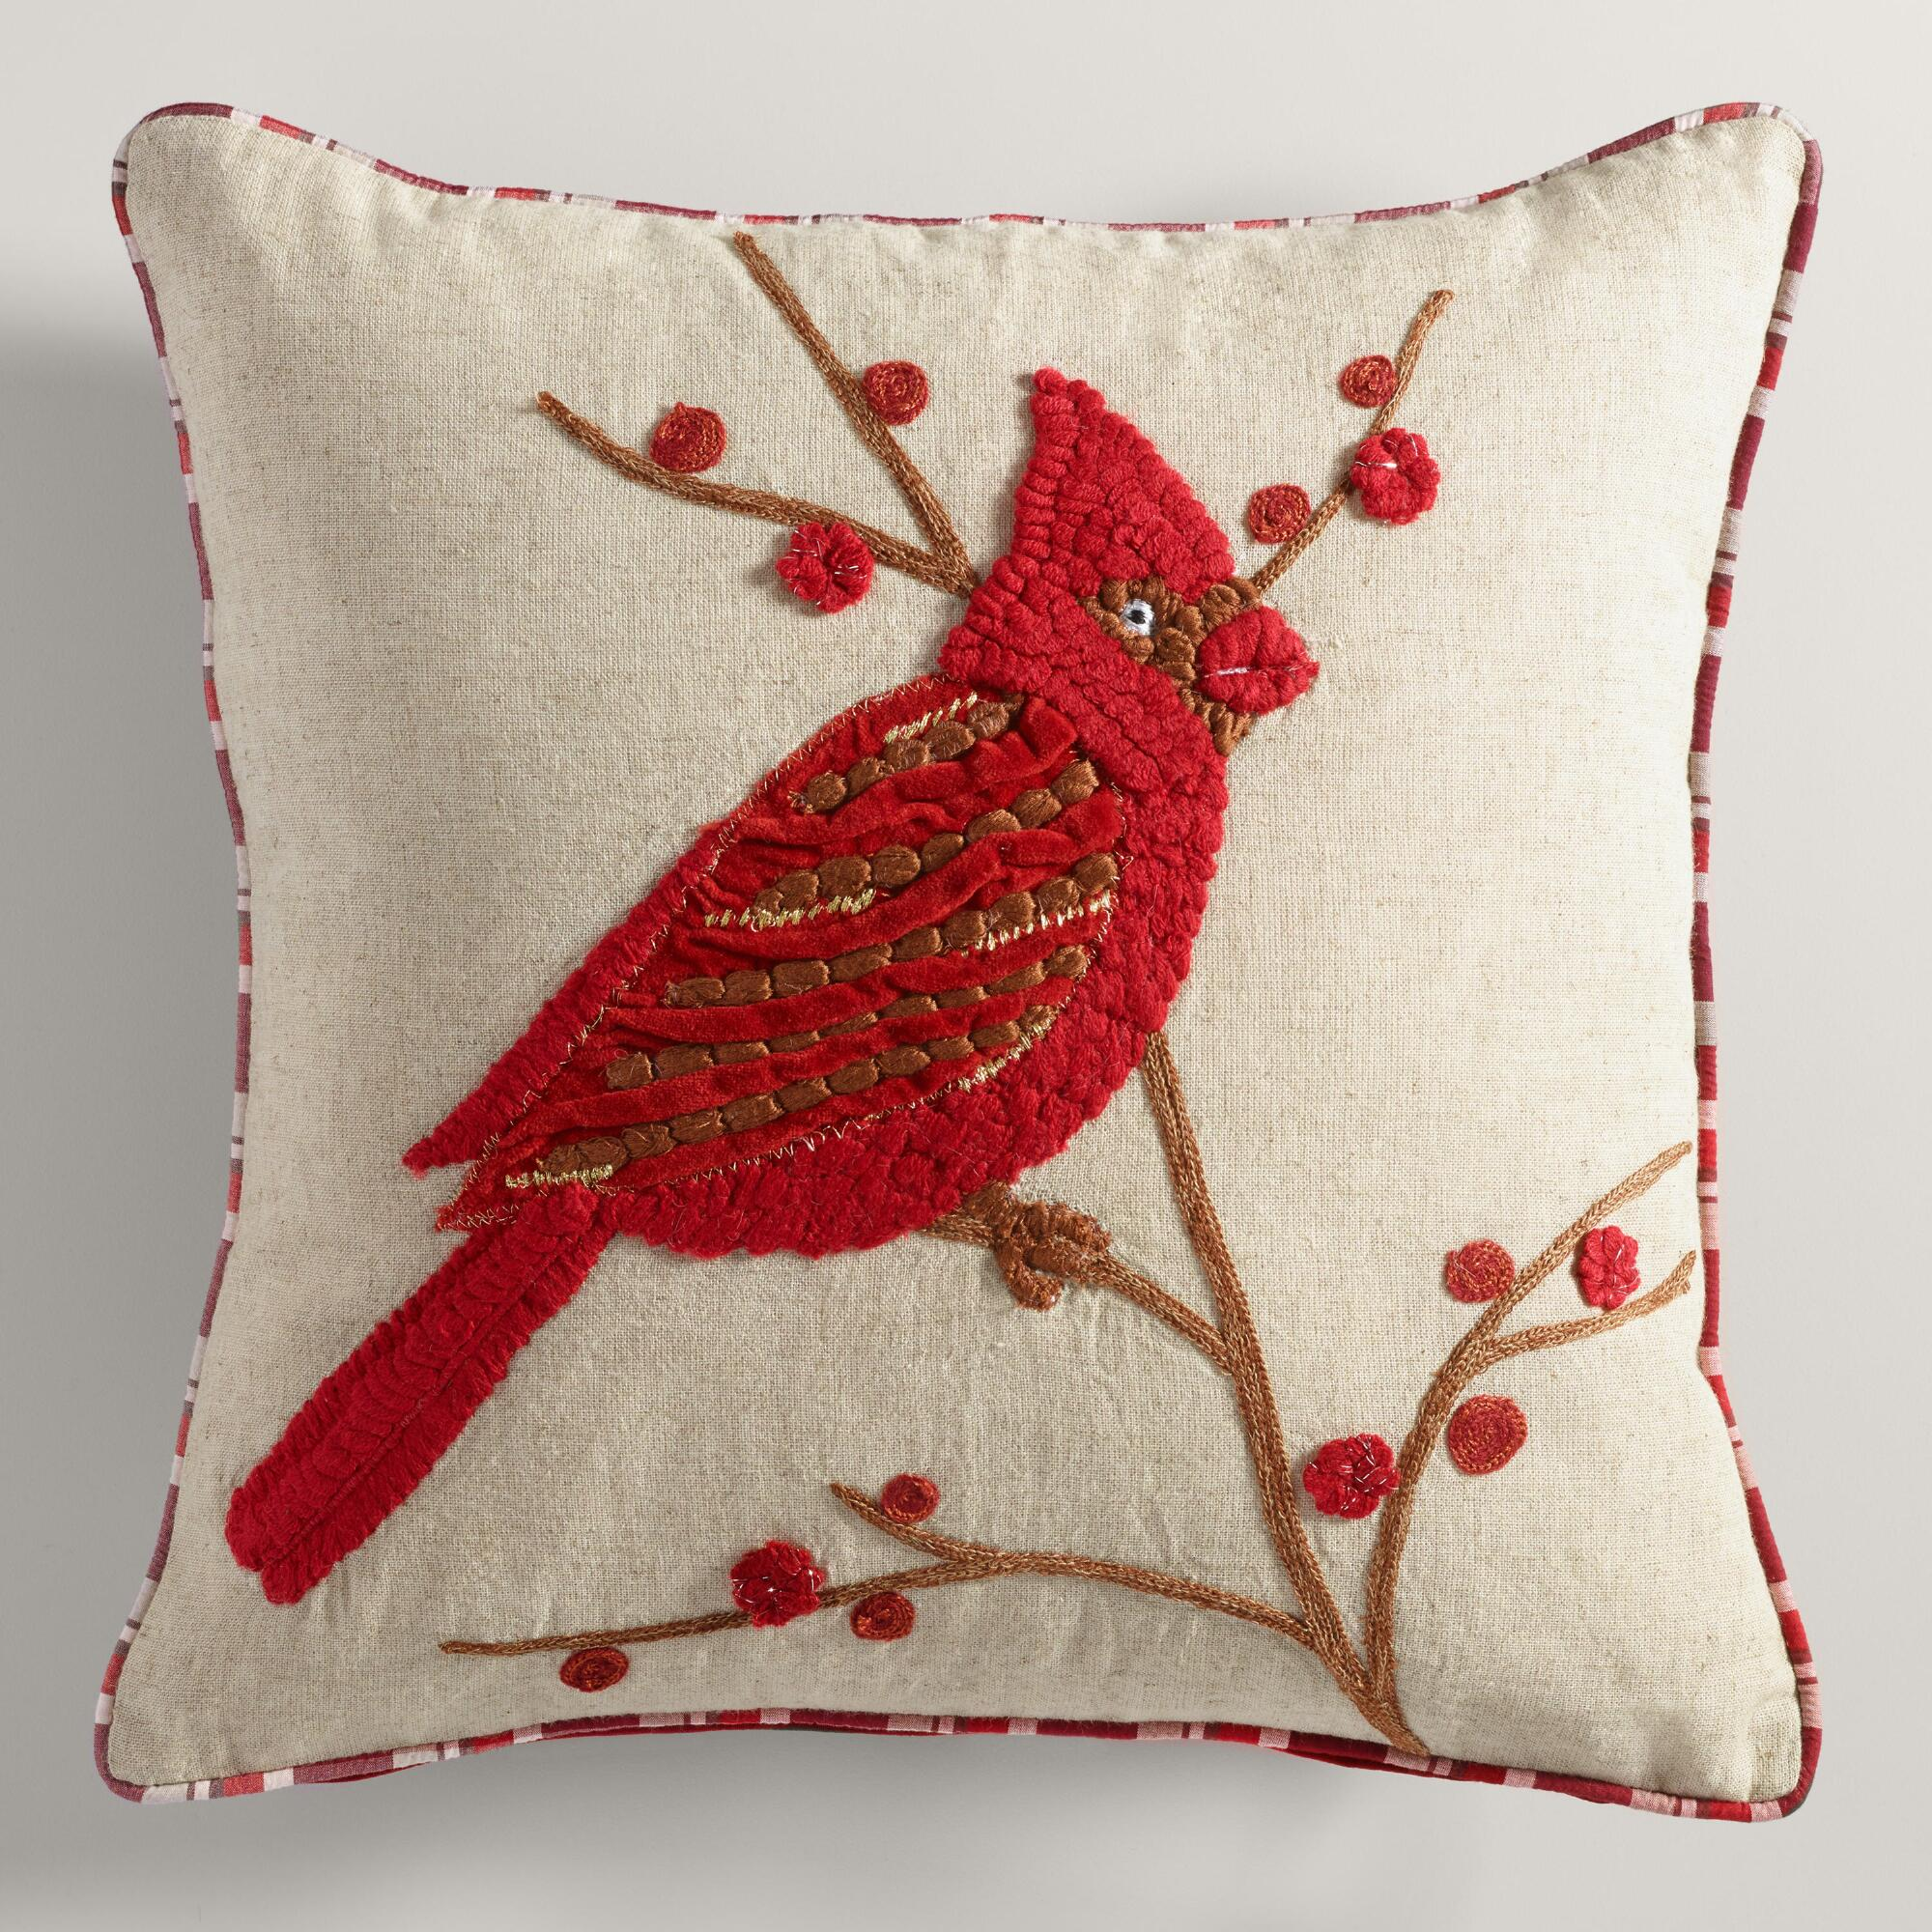 Throw Pillows With Birds : Red Bird with Branch Throw Pillow World Market